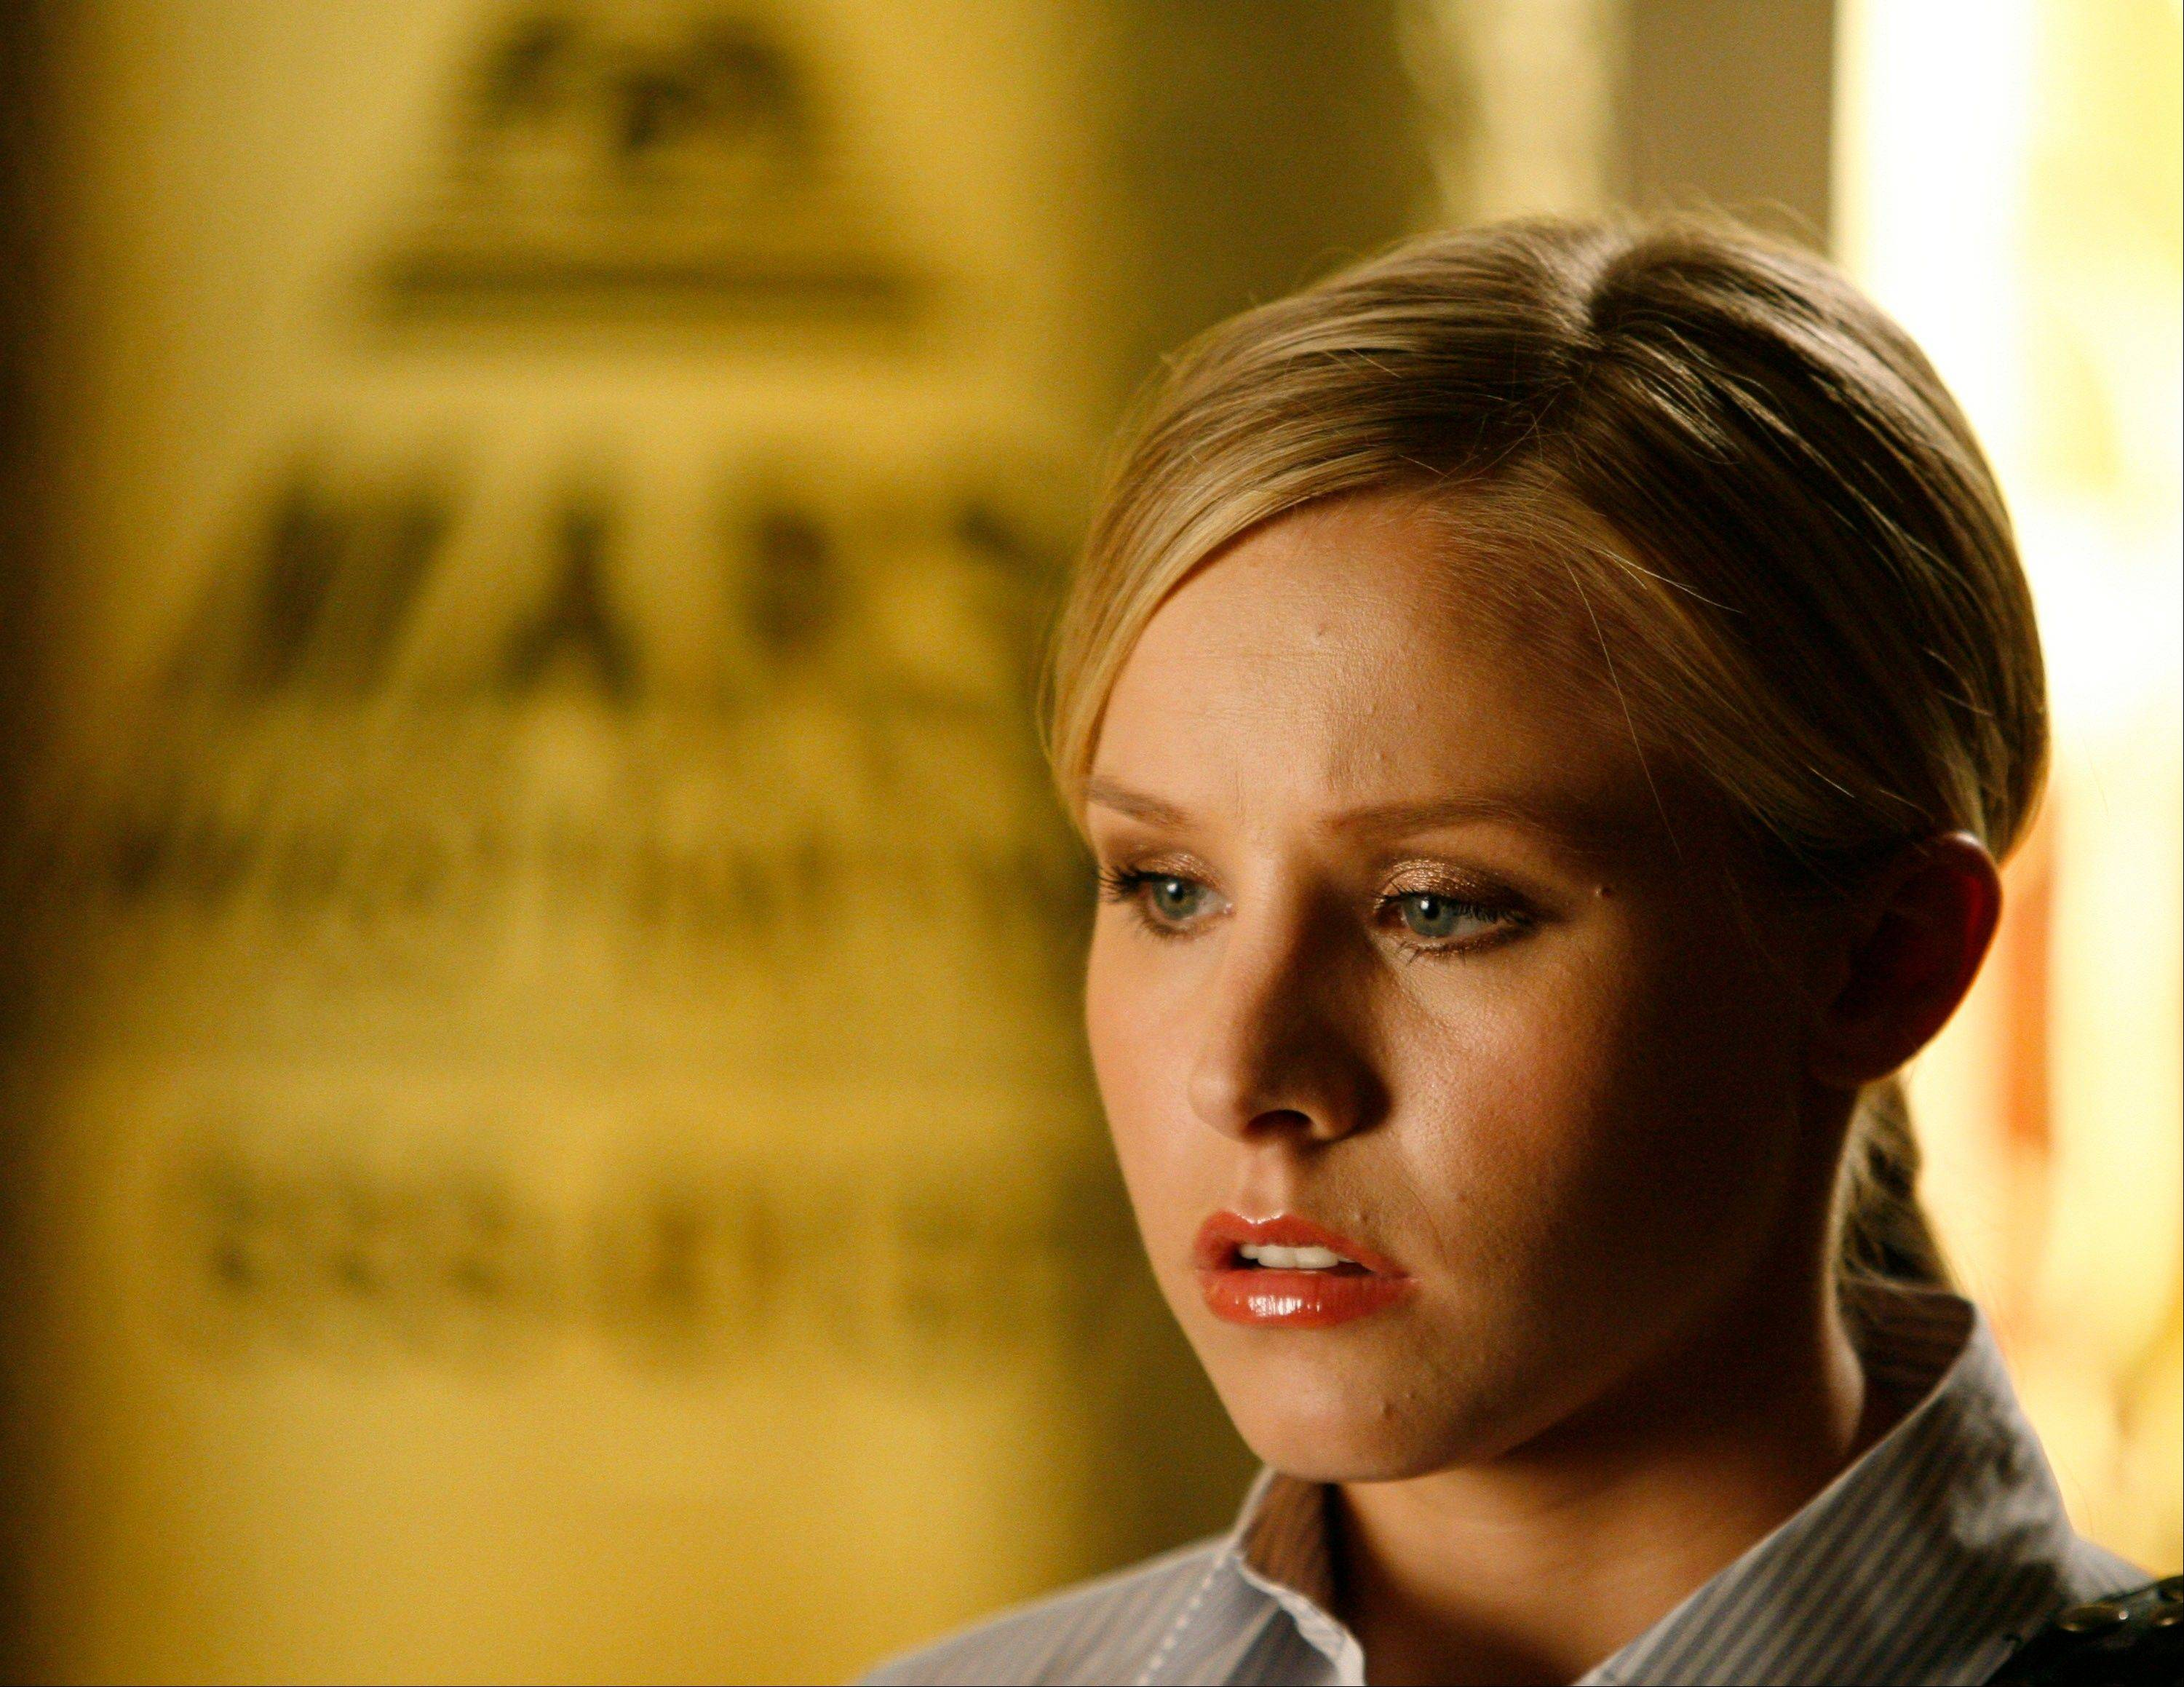 The CW says it�s developing an online spinoff of the �Veronica Mars� series, which originally starred Kristen Bell.